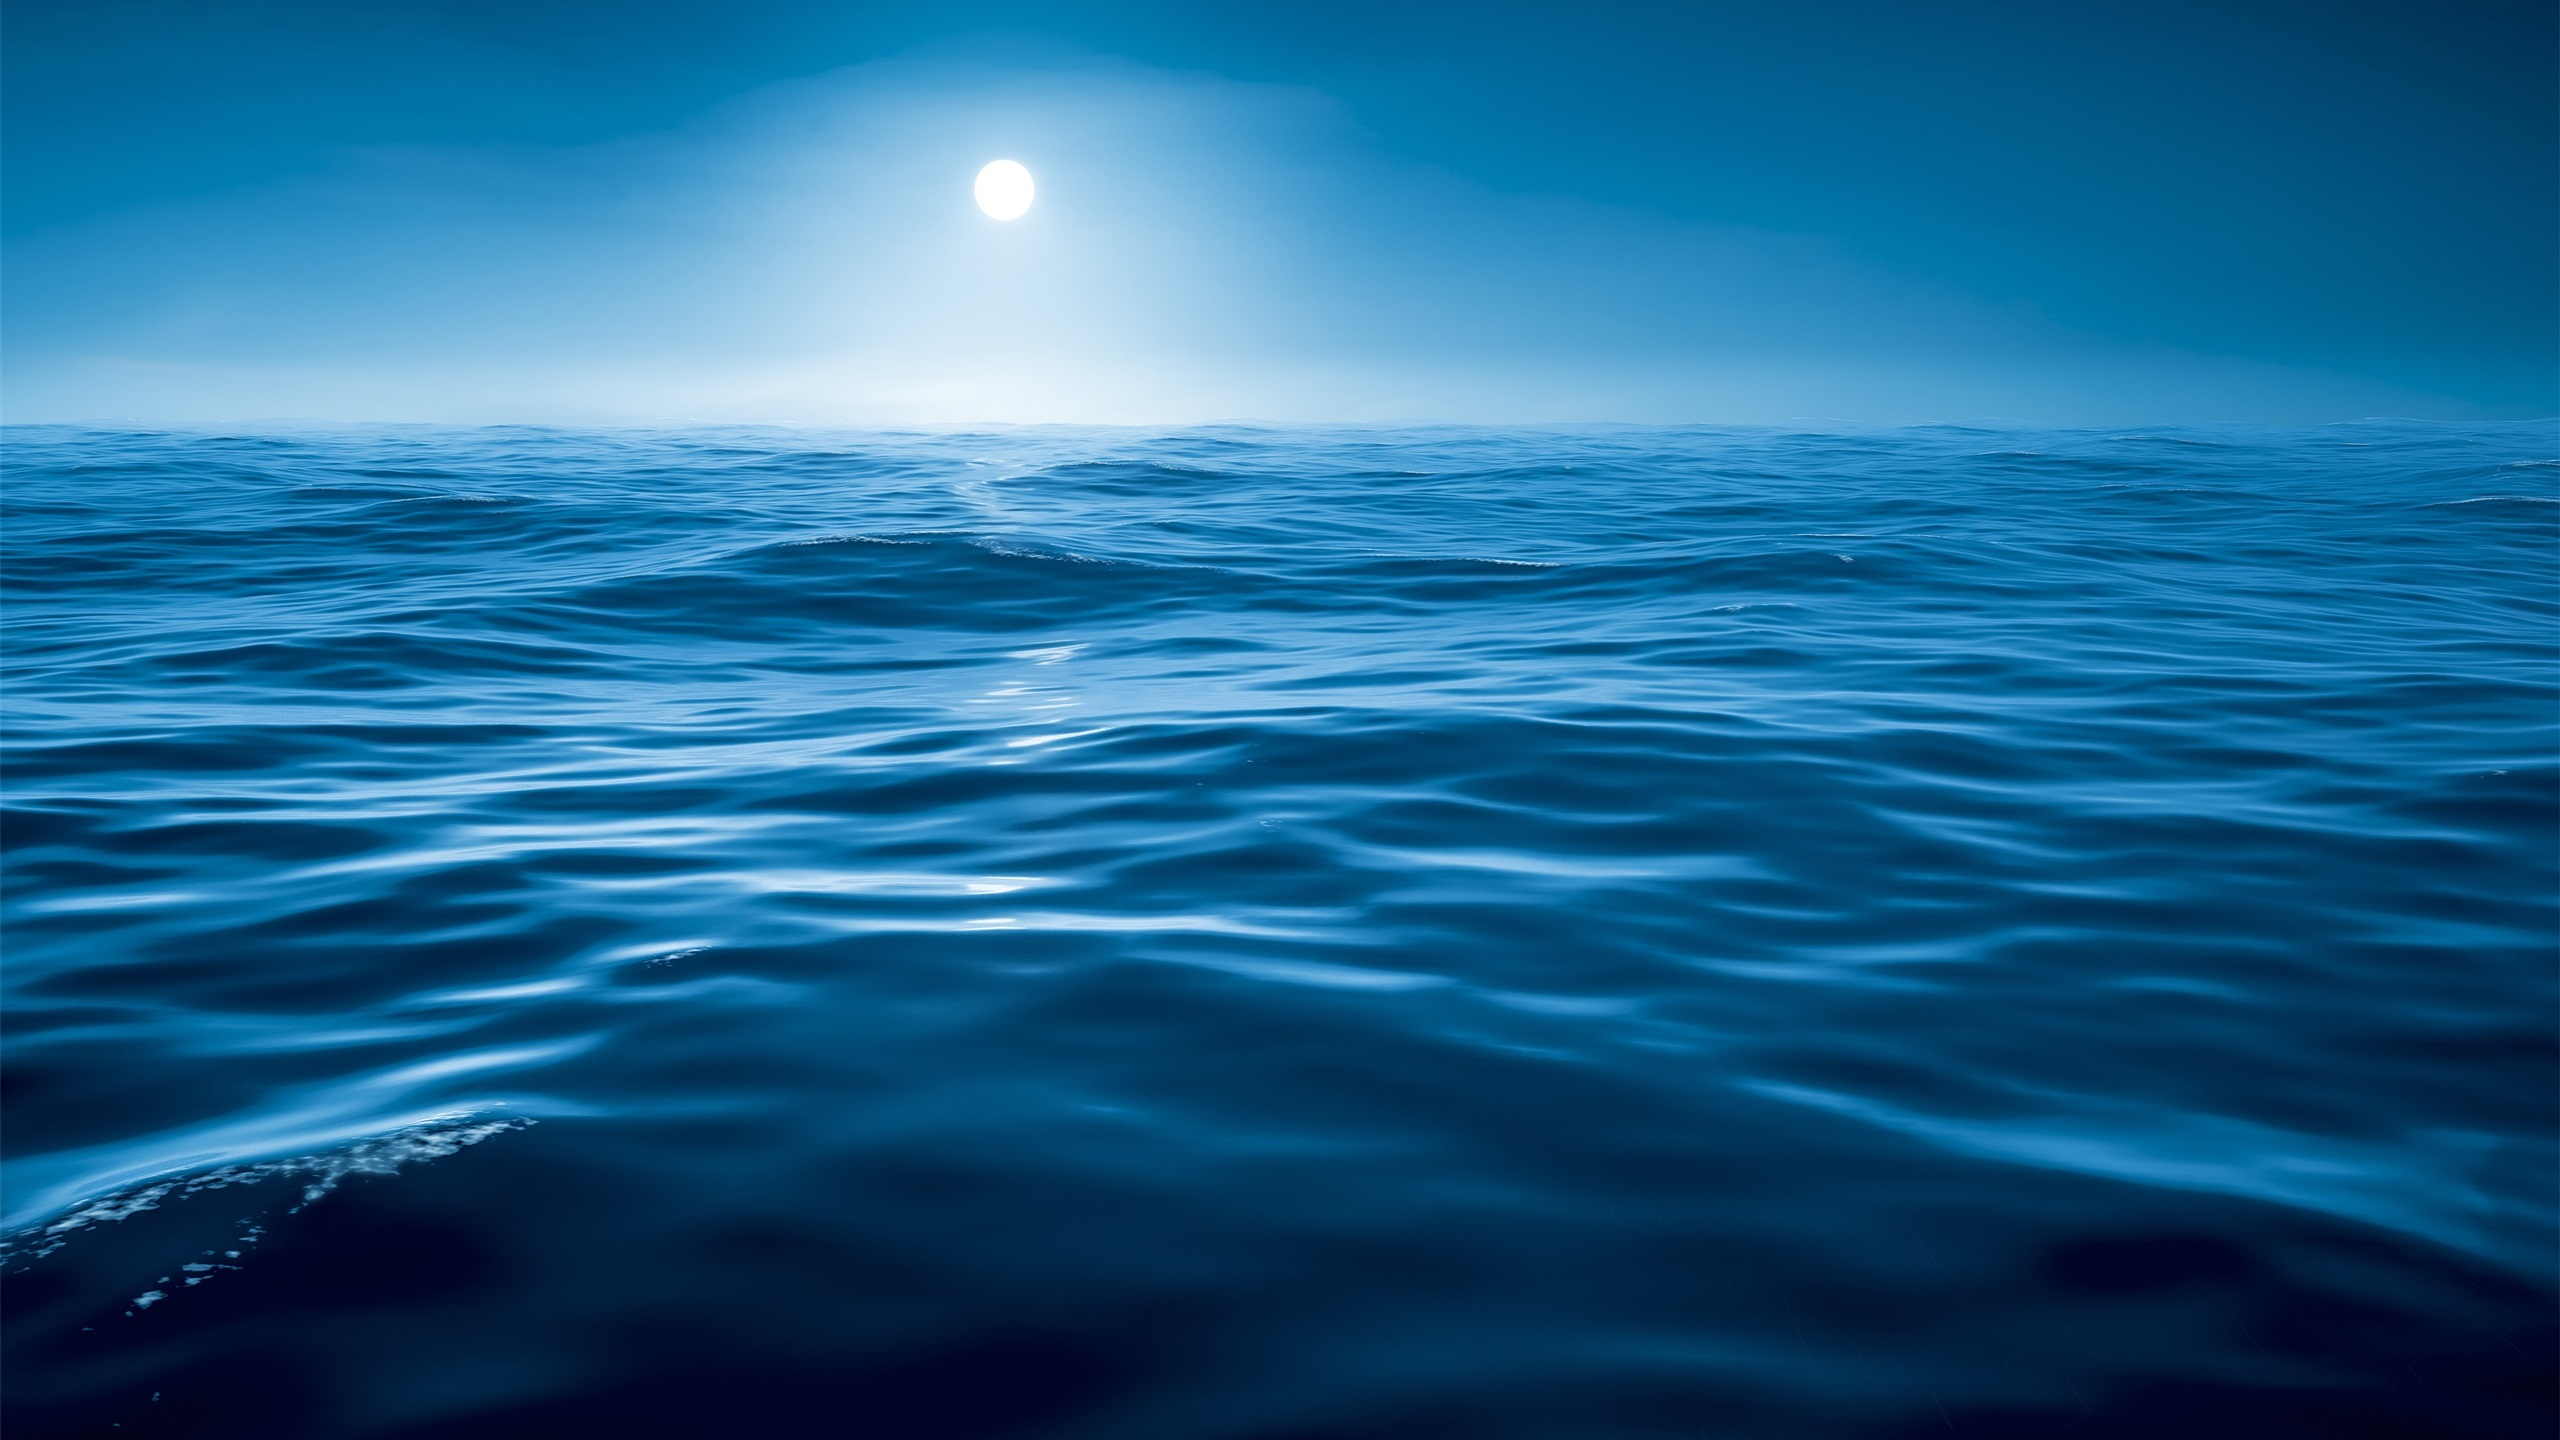 Wallpaper Night Water Sea Blue Moon 2560x1600 Hd Picture